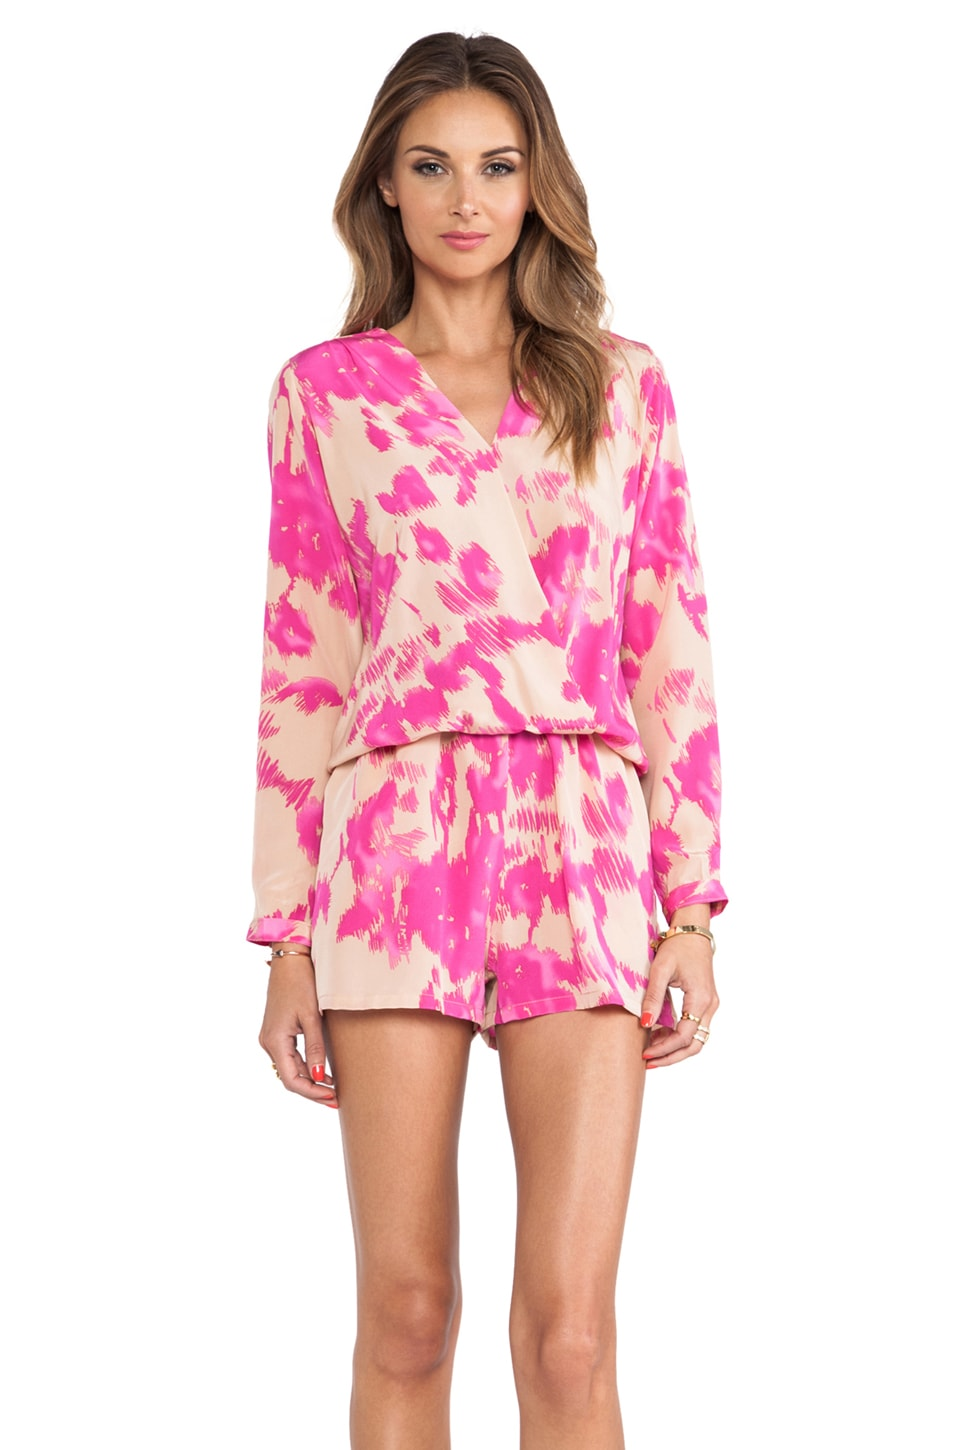 Karina Grimaldi Nelly Print Romper in Almond Flower